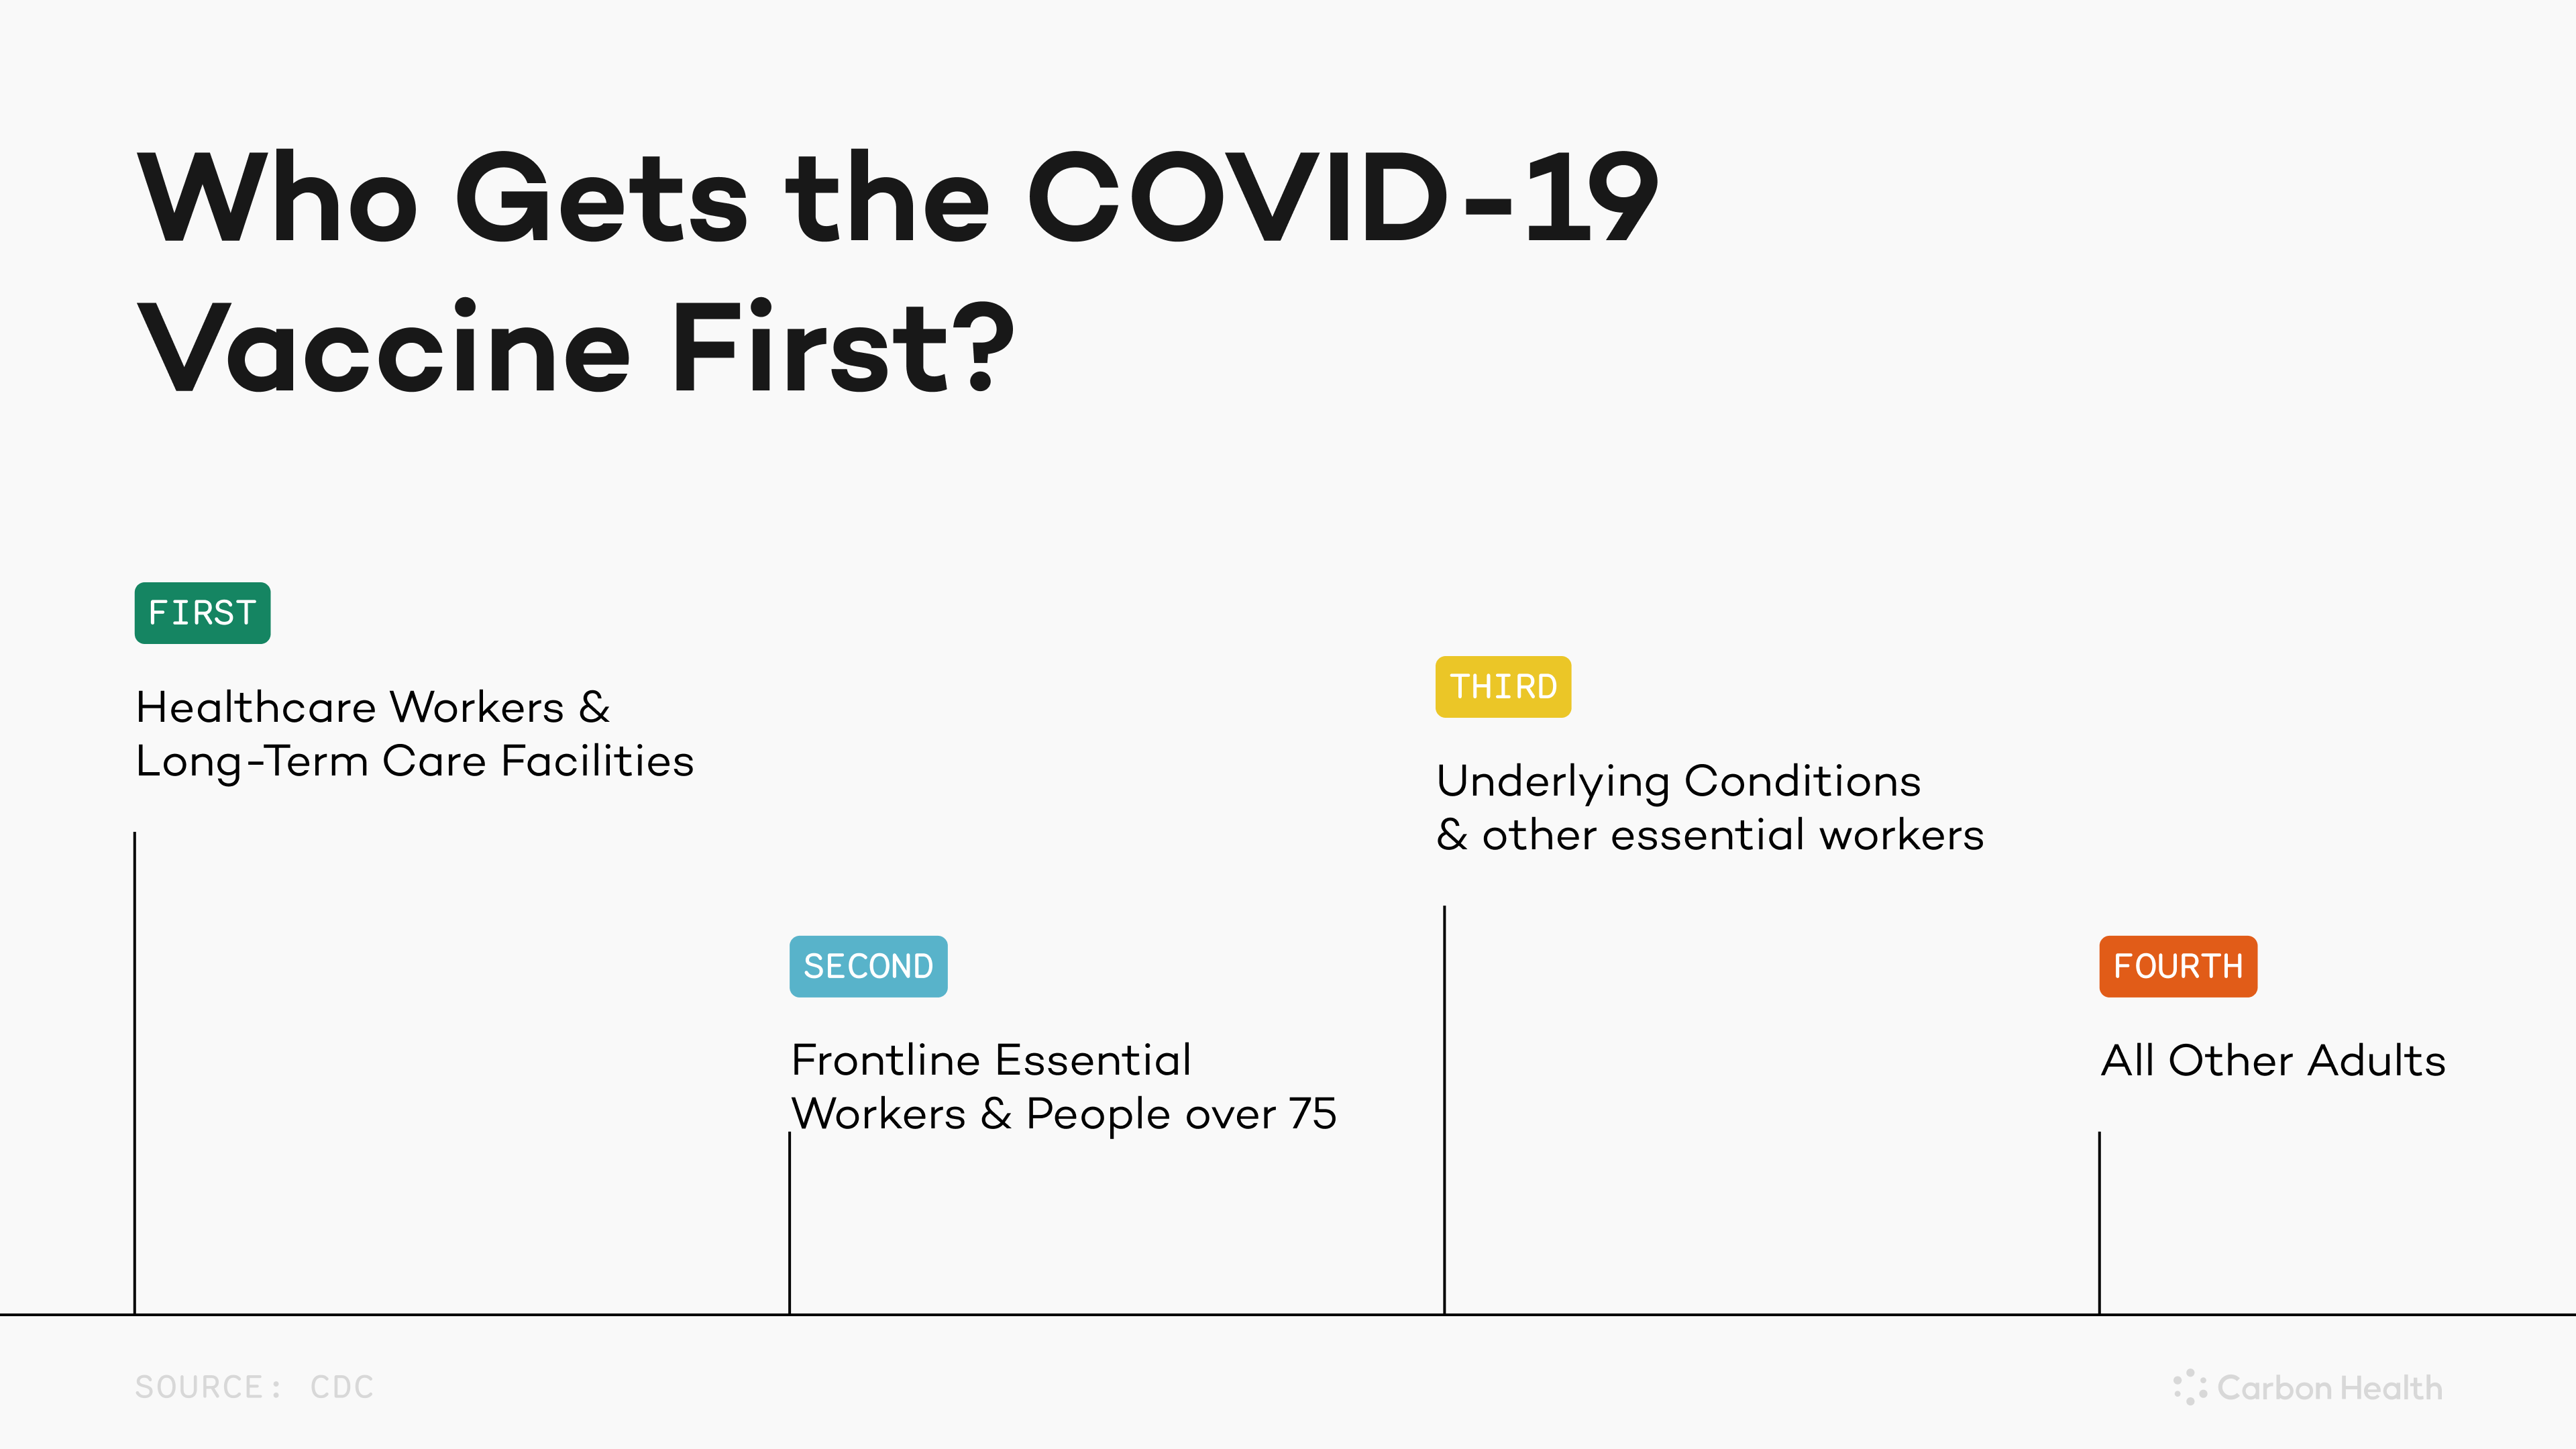 infographic describing the vaccine distribution from first in line to last in line